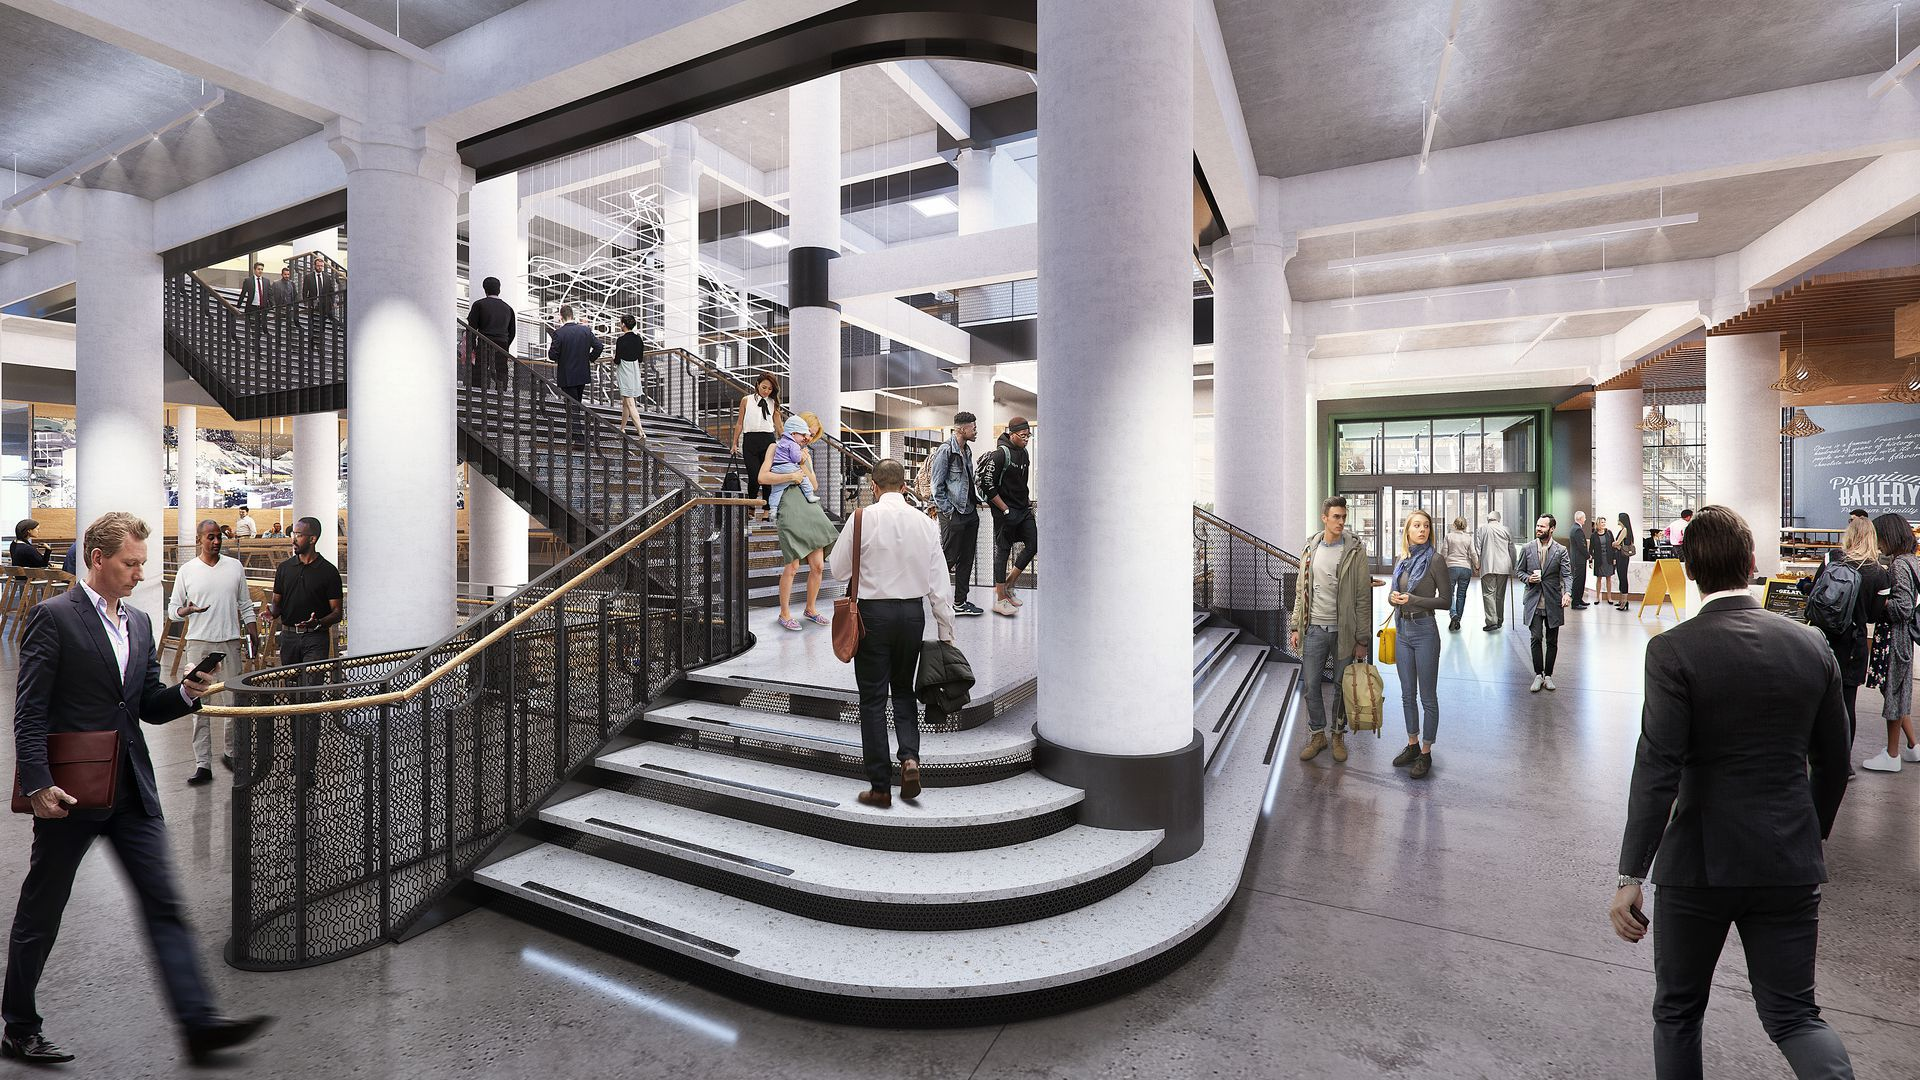 A rendering of business professionals walking up a large staircase in the renovated Dayton's department store project in downtown Minneapolis.